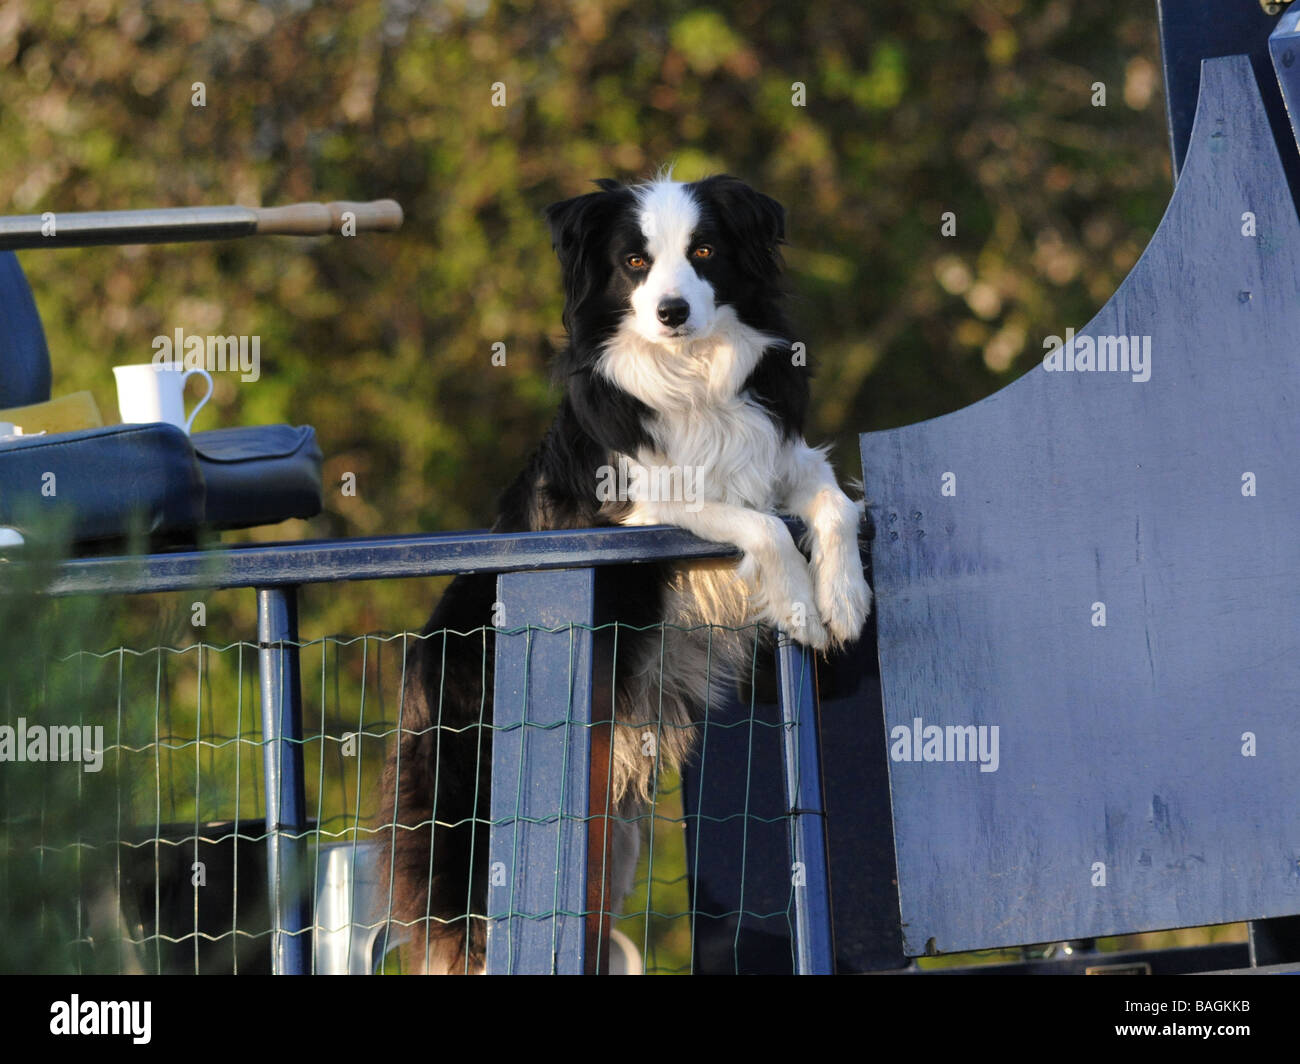 A dog that lives on a canal boat. - Stock Image